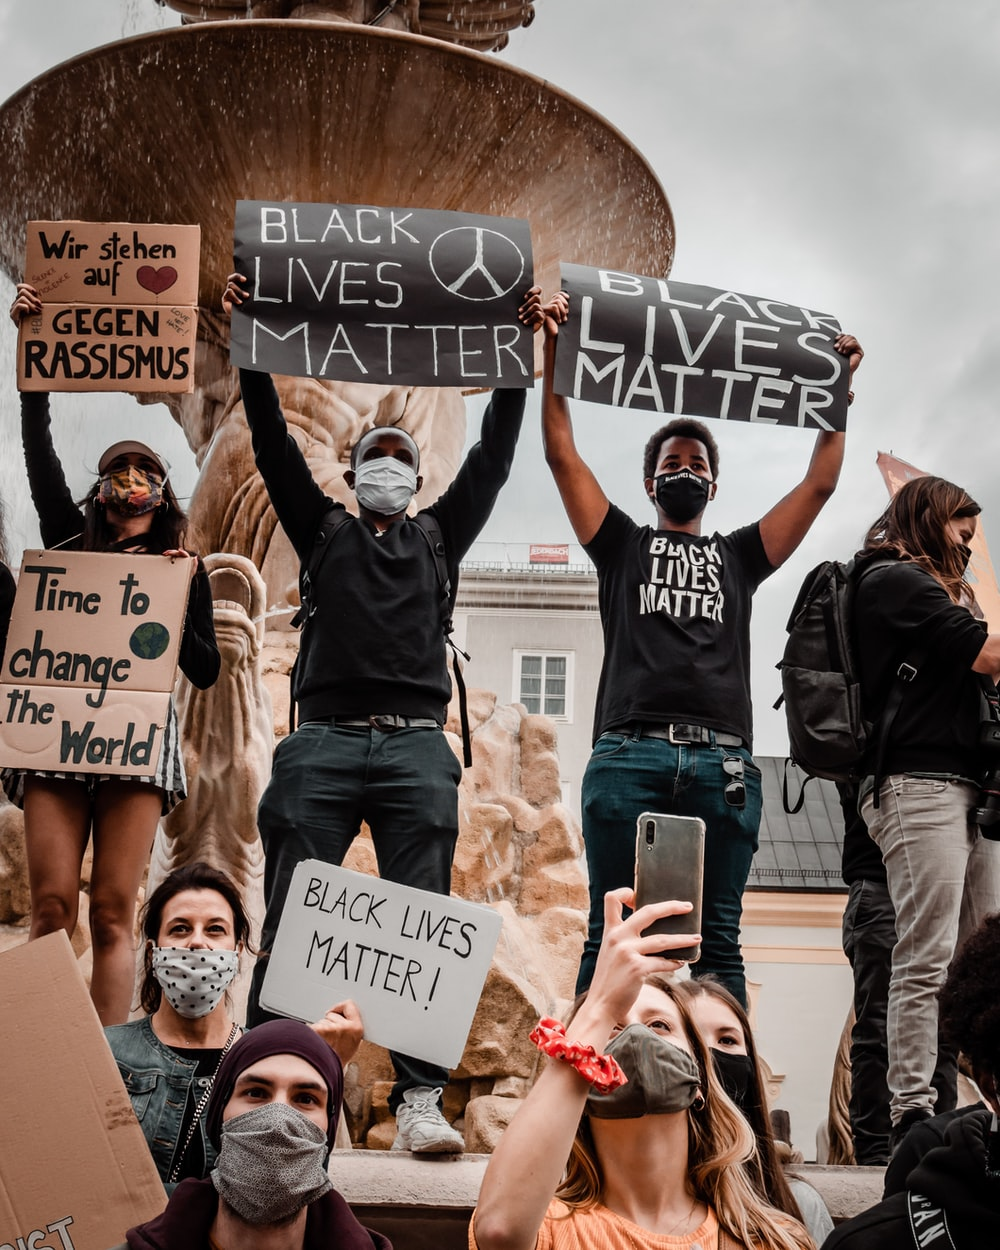 group of people holding white and black banner